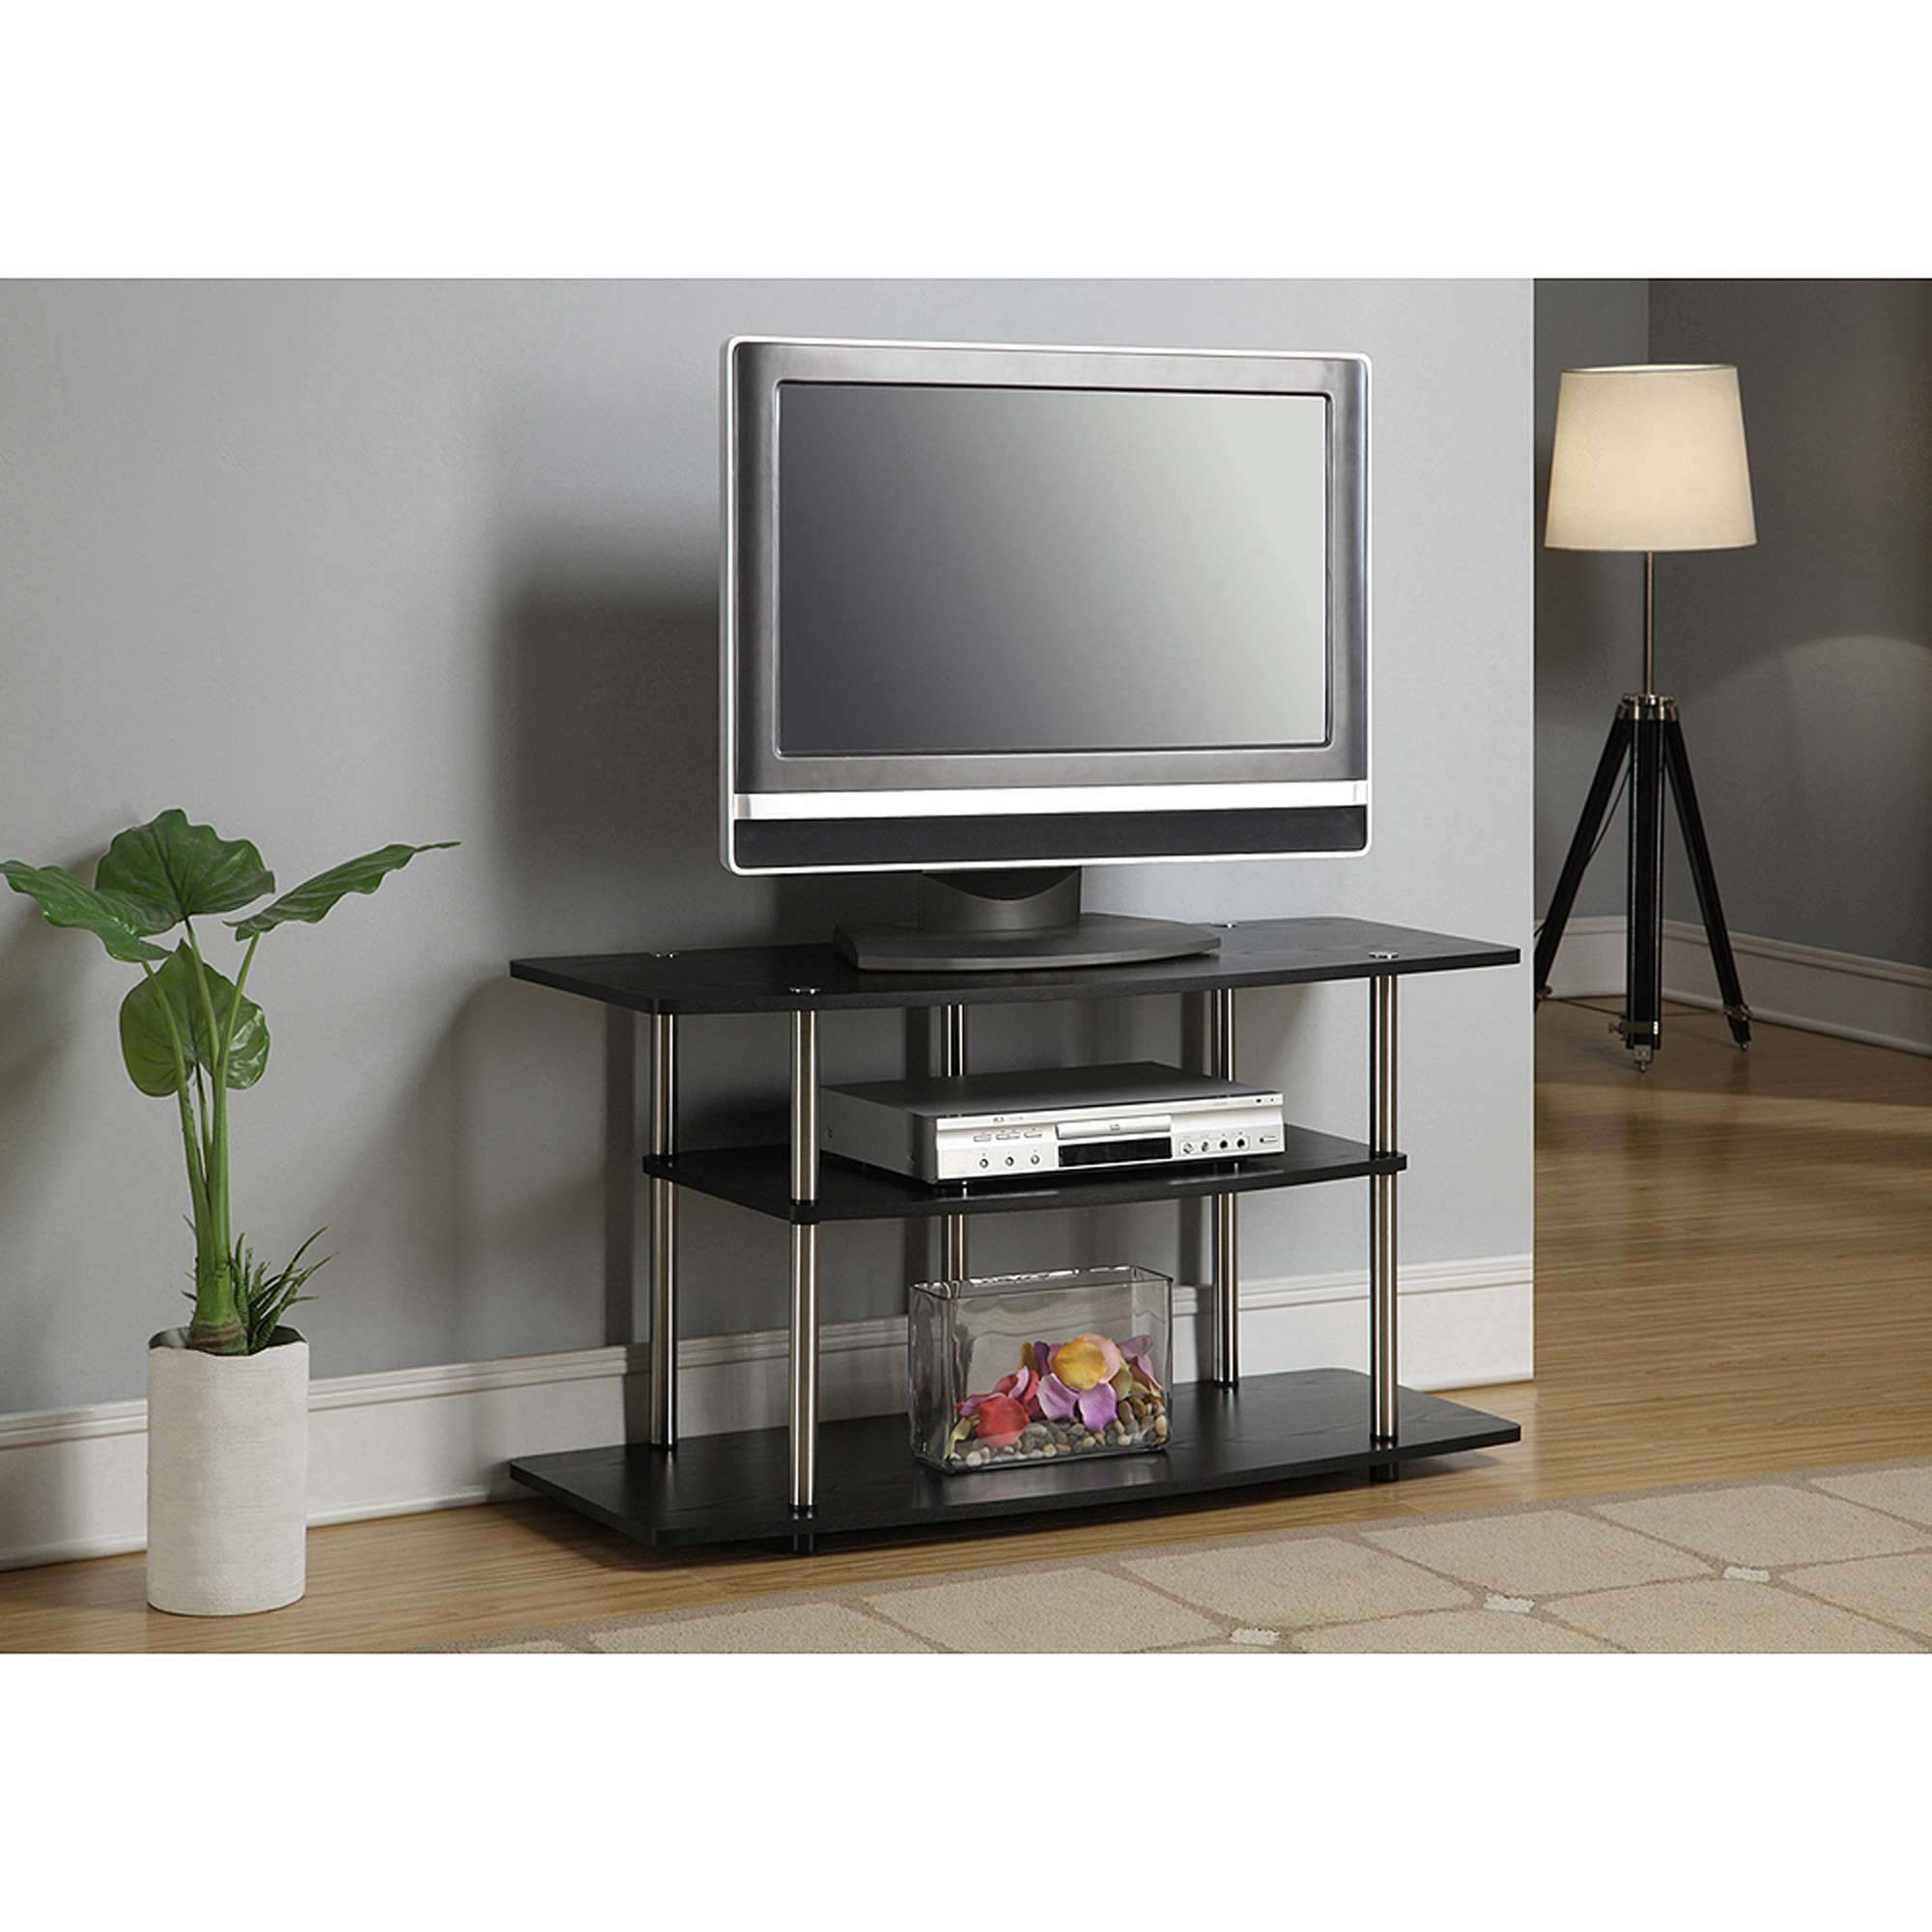 Z Line Designs Soliss 3 In 1 Tv Stand With Mount, For Tvs Up To 60 Within 32 Inch Tv Stands (View 6 of 15)